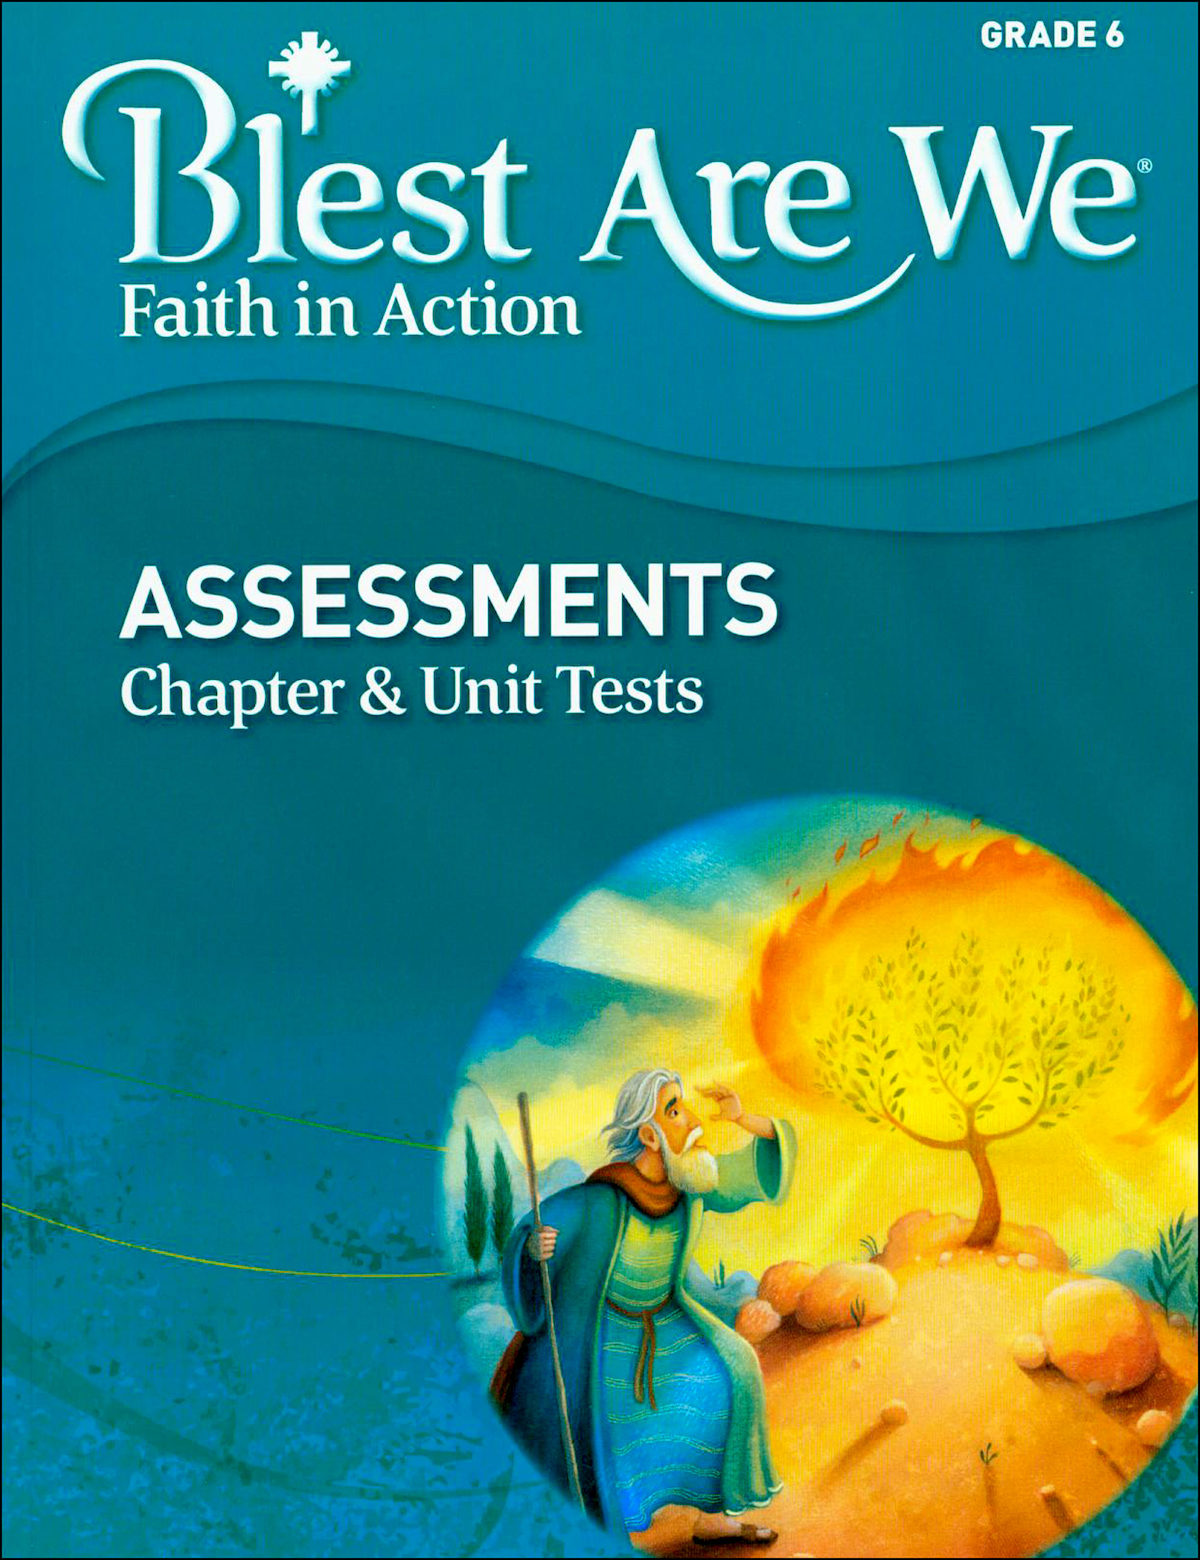 Blest Are We Faith In Action K 8 Grade 6 Assessment Book Comcenter C Learn vocabulary, terms and more with flashcards, games and other study tools. blest are we faith in action k 8 grade 6 assessment book